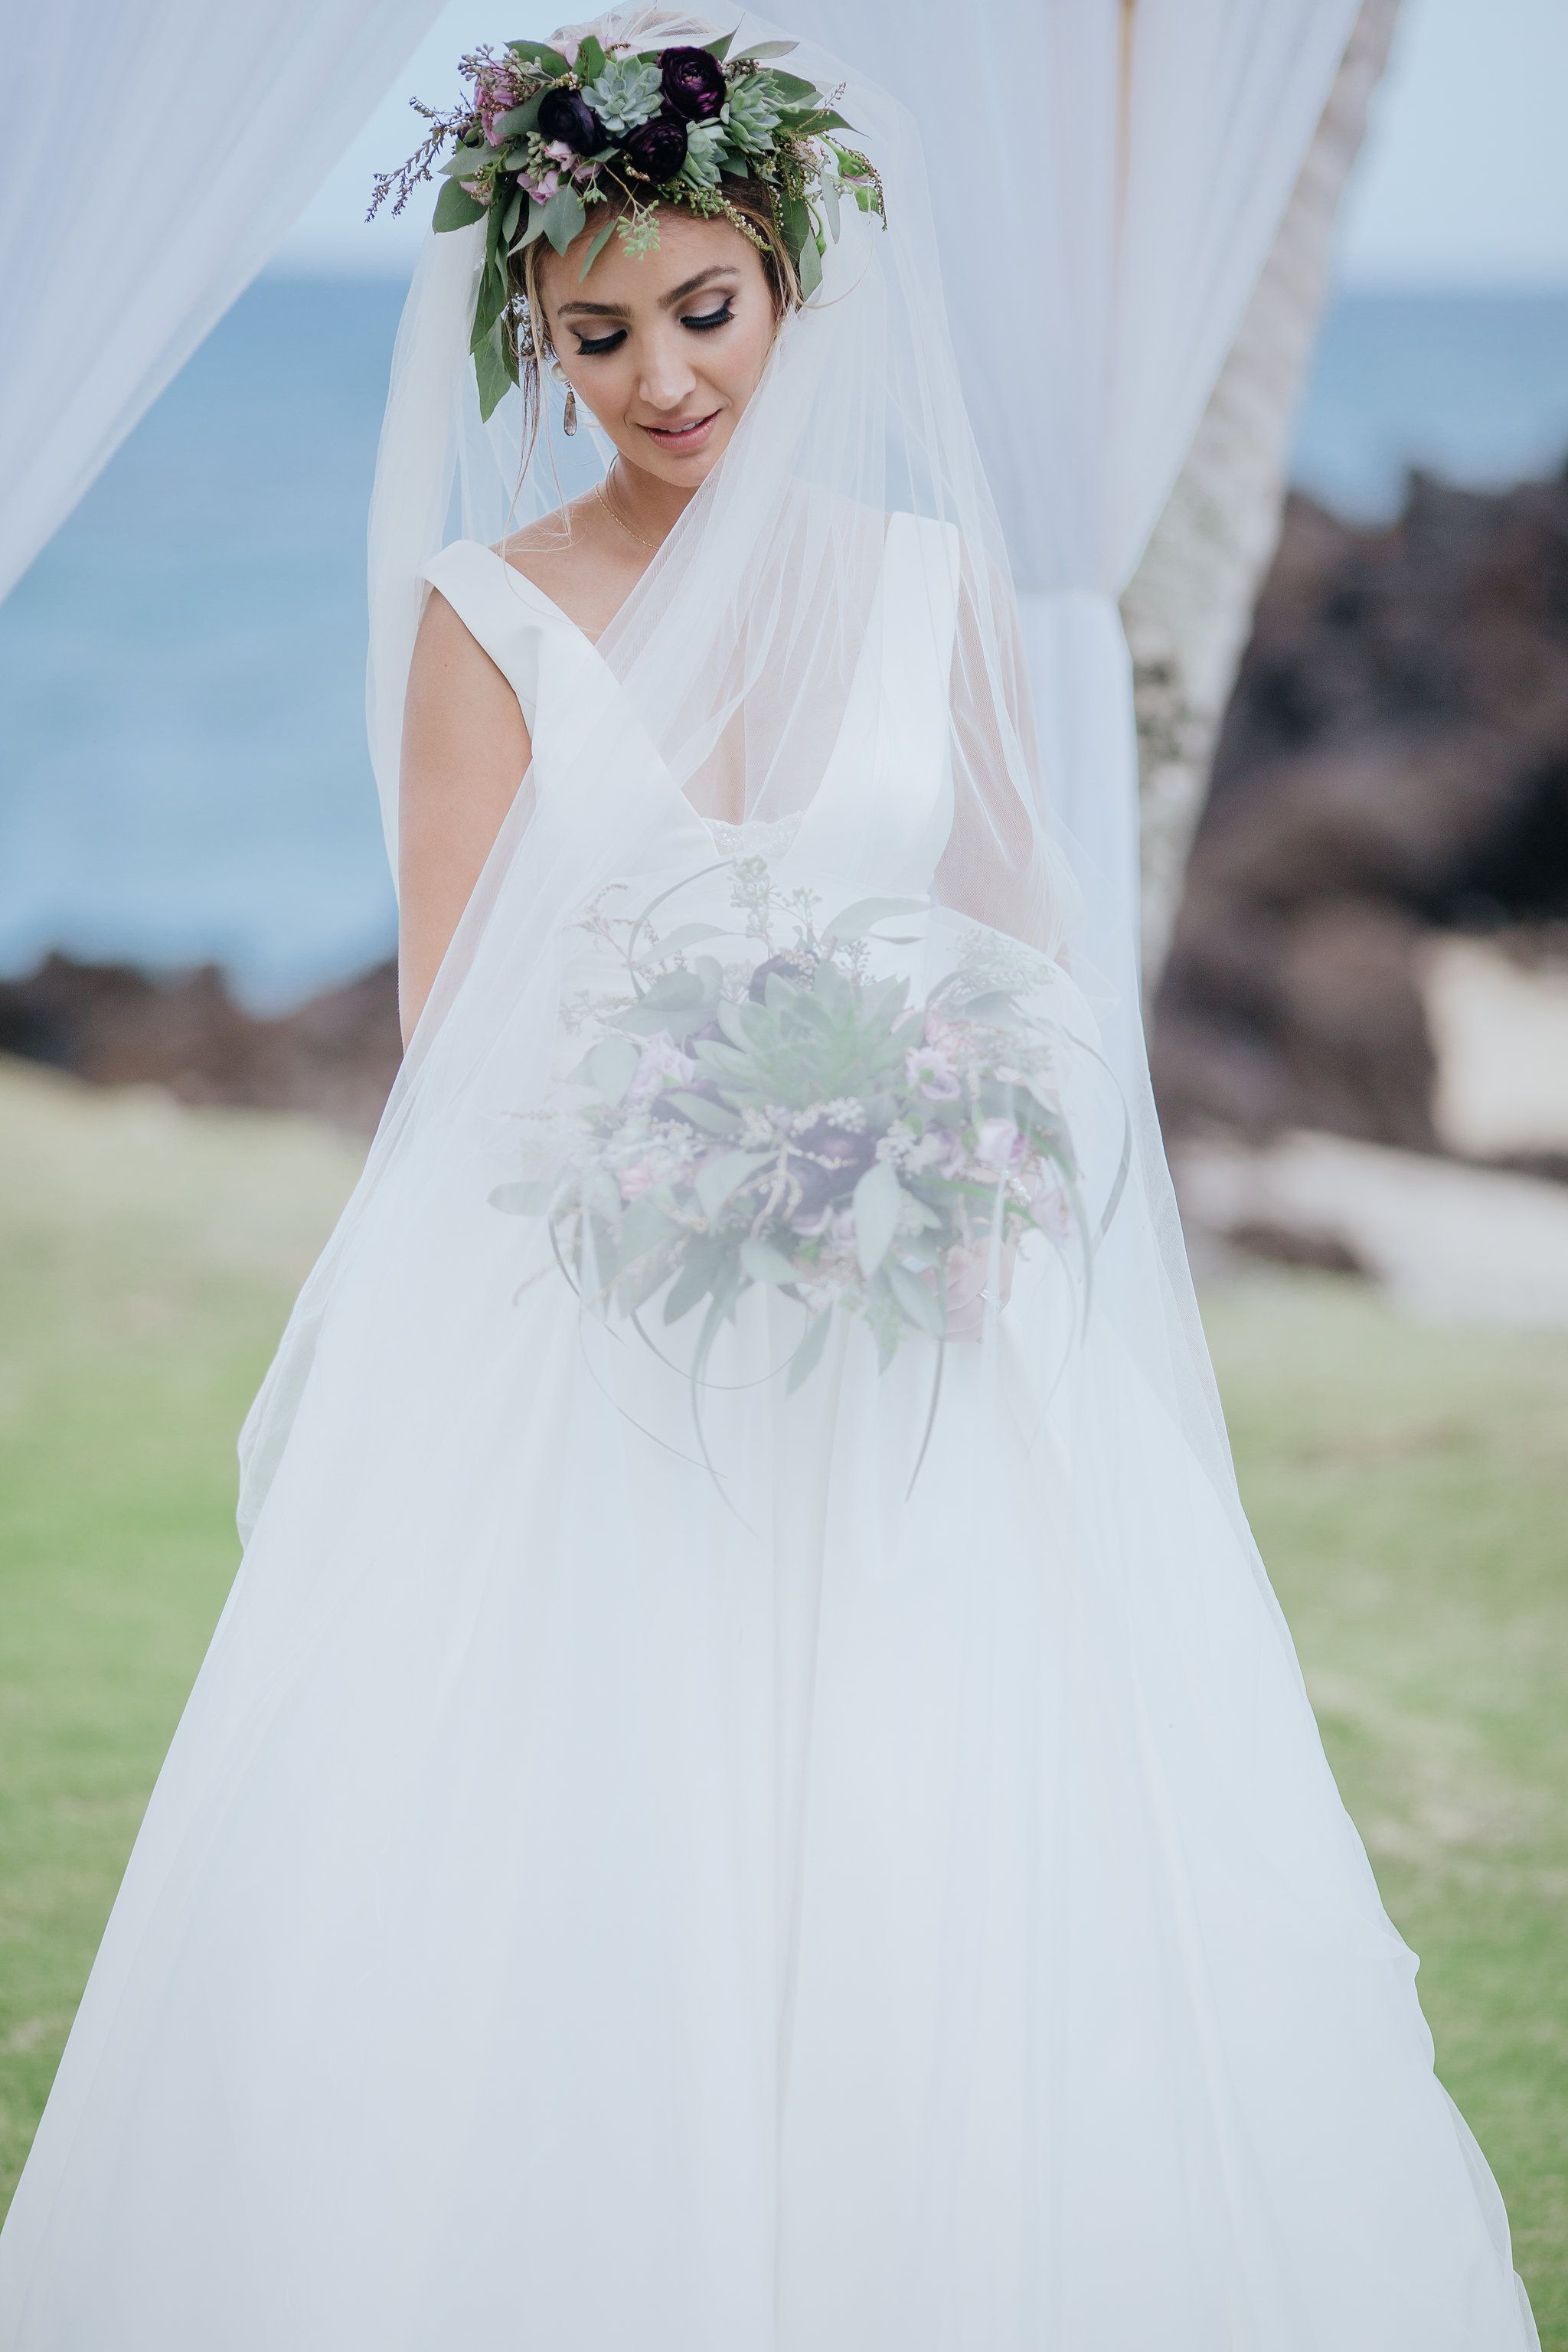 Morning wedding dresses  Hoda u Tarek said their ucI Dousud in a private and intimate wedding